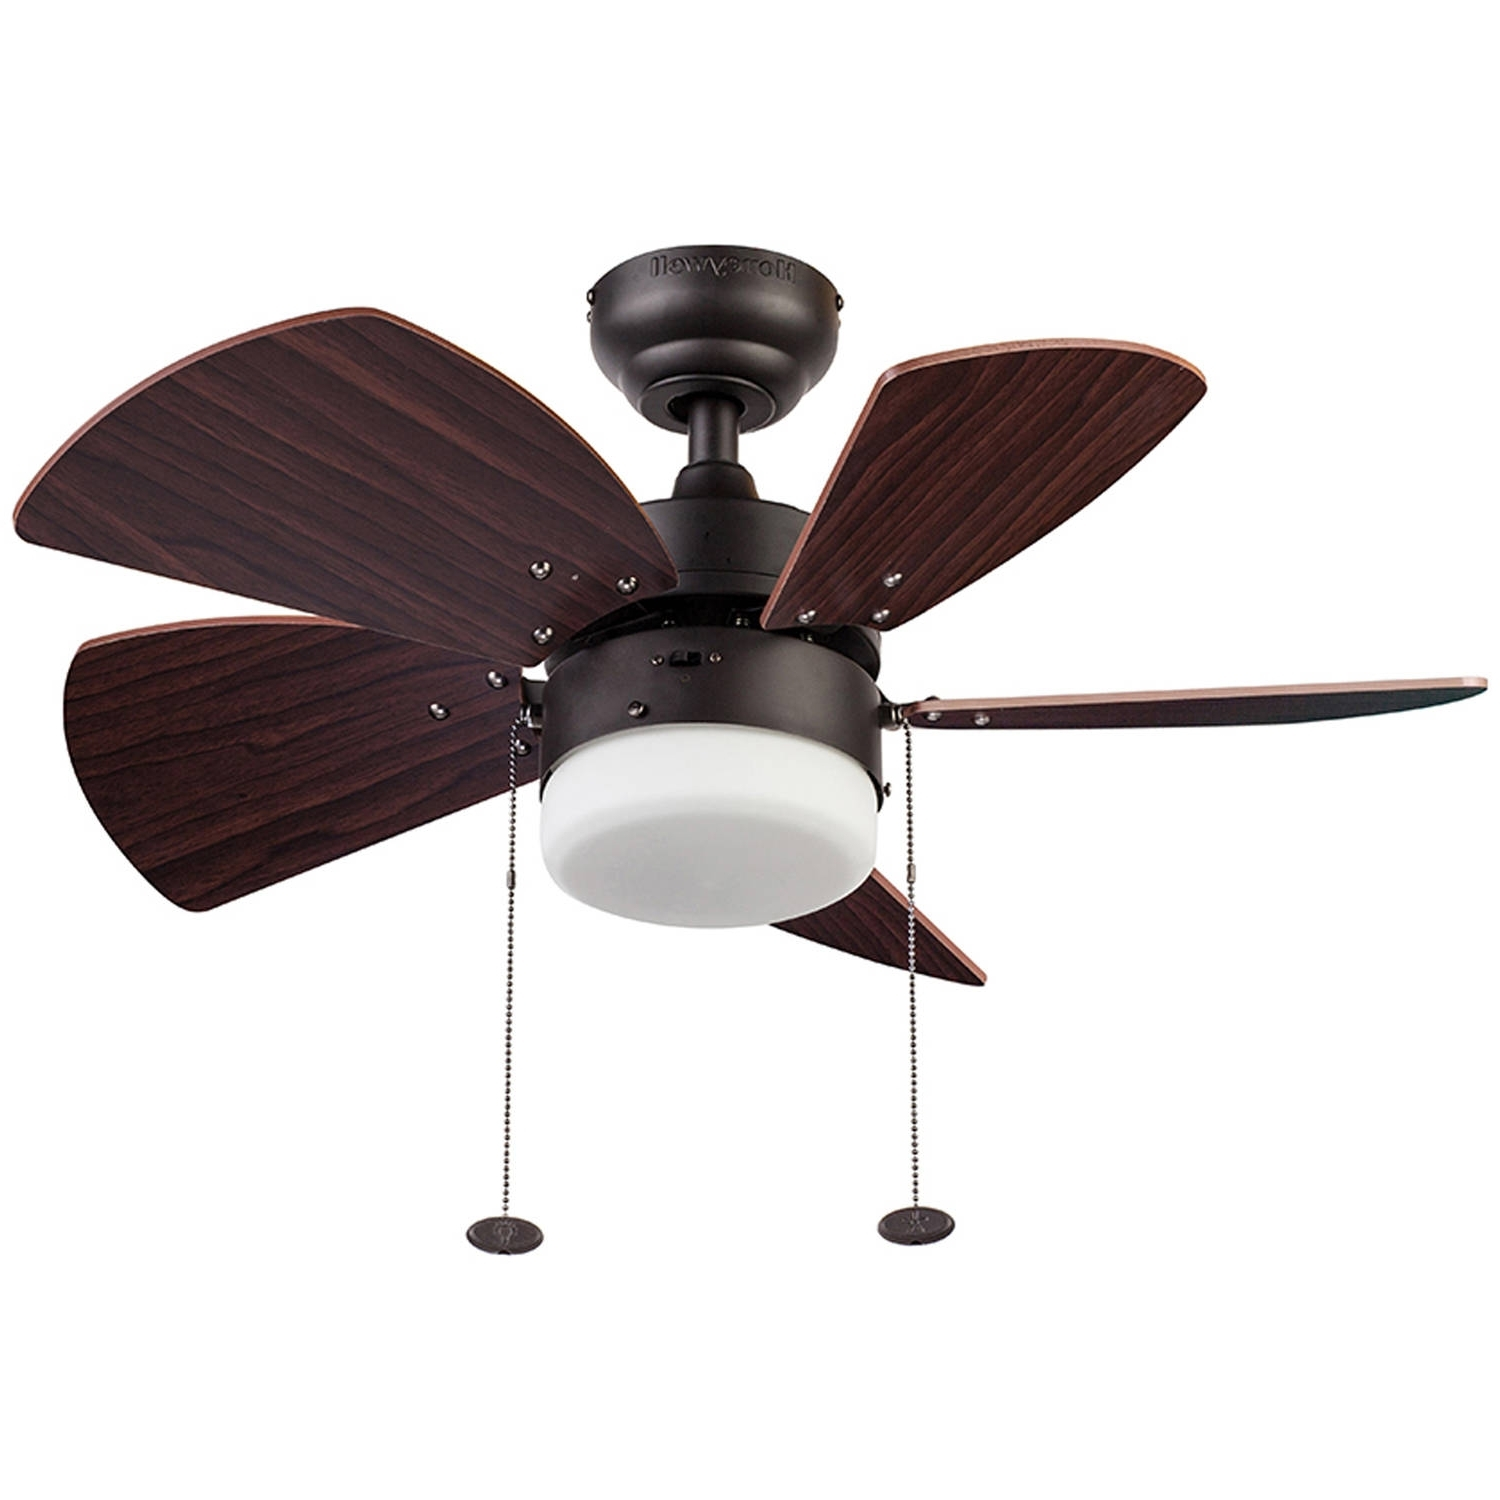 "Outdoor Ceiling Fans With Lights At Walmart Throughout Current 30"" Honeywell Lenox Ceiling Fan, Bronze – Walmart (View 12 of 20)"